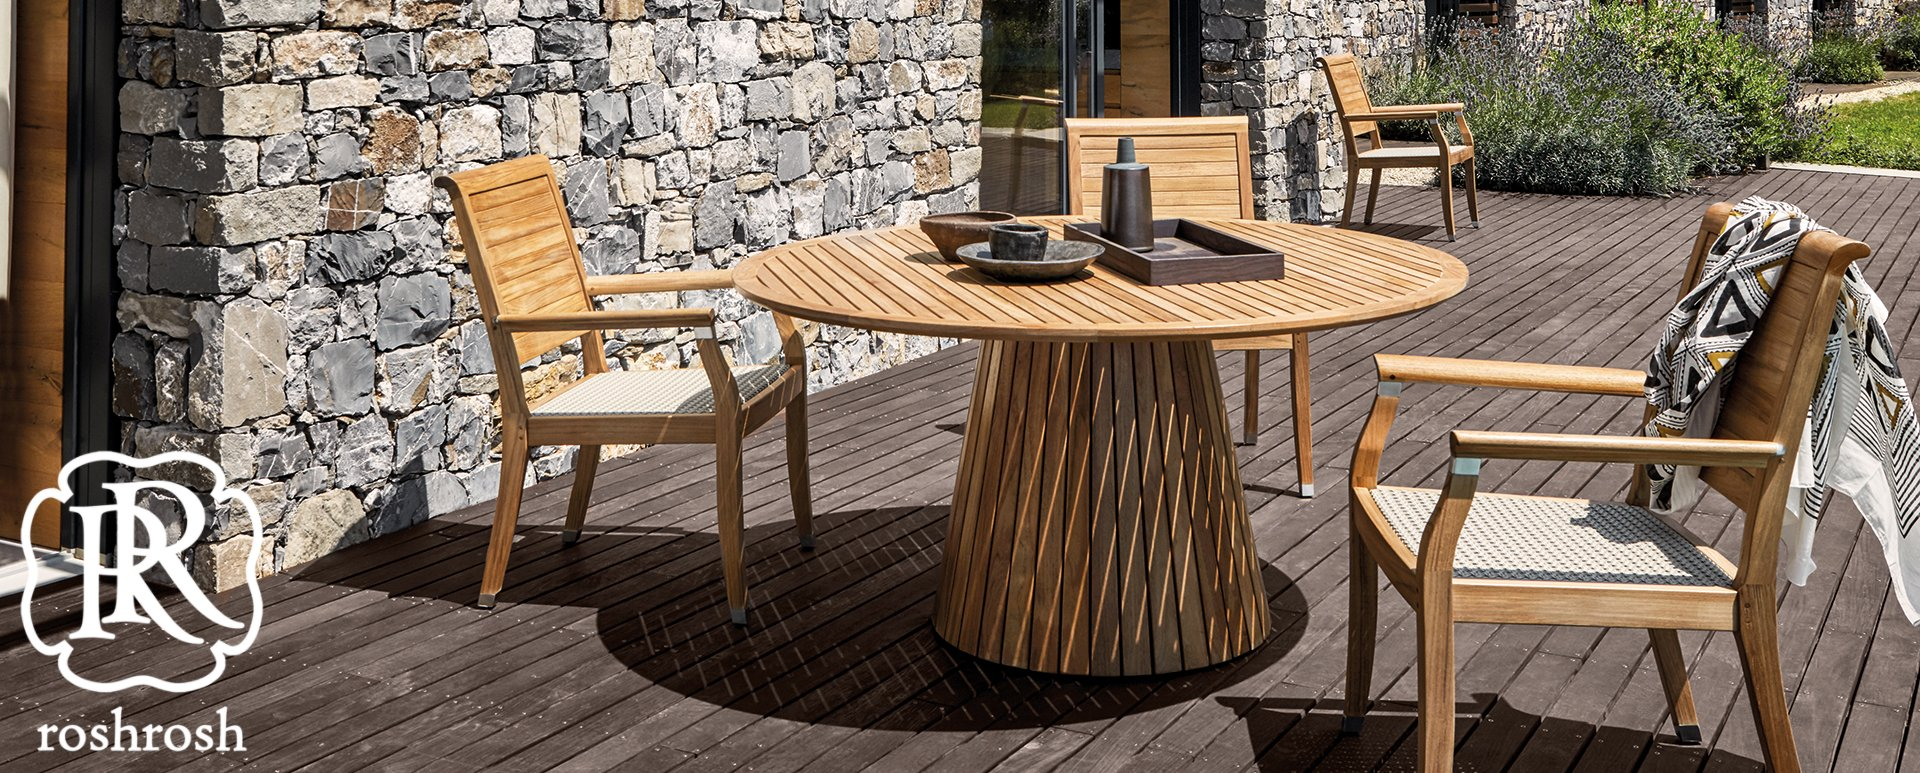 teak table and chairs garden ergonomic gaming chair 3 things to know about furniture wood indonesia outdoor indoor